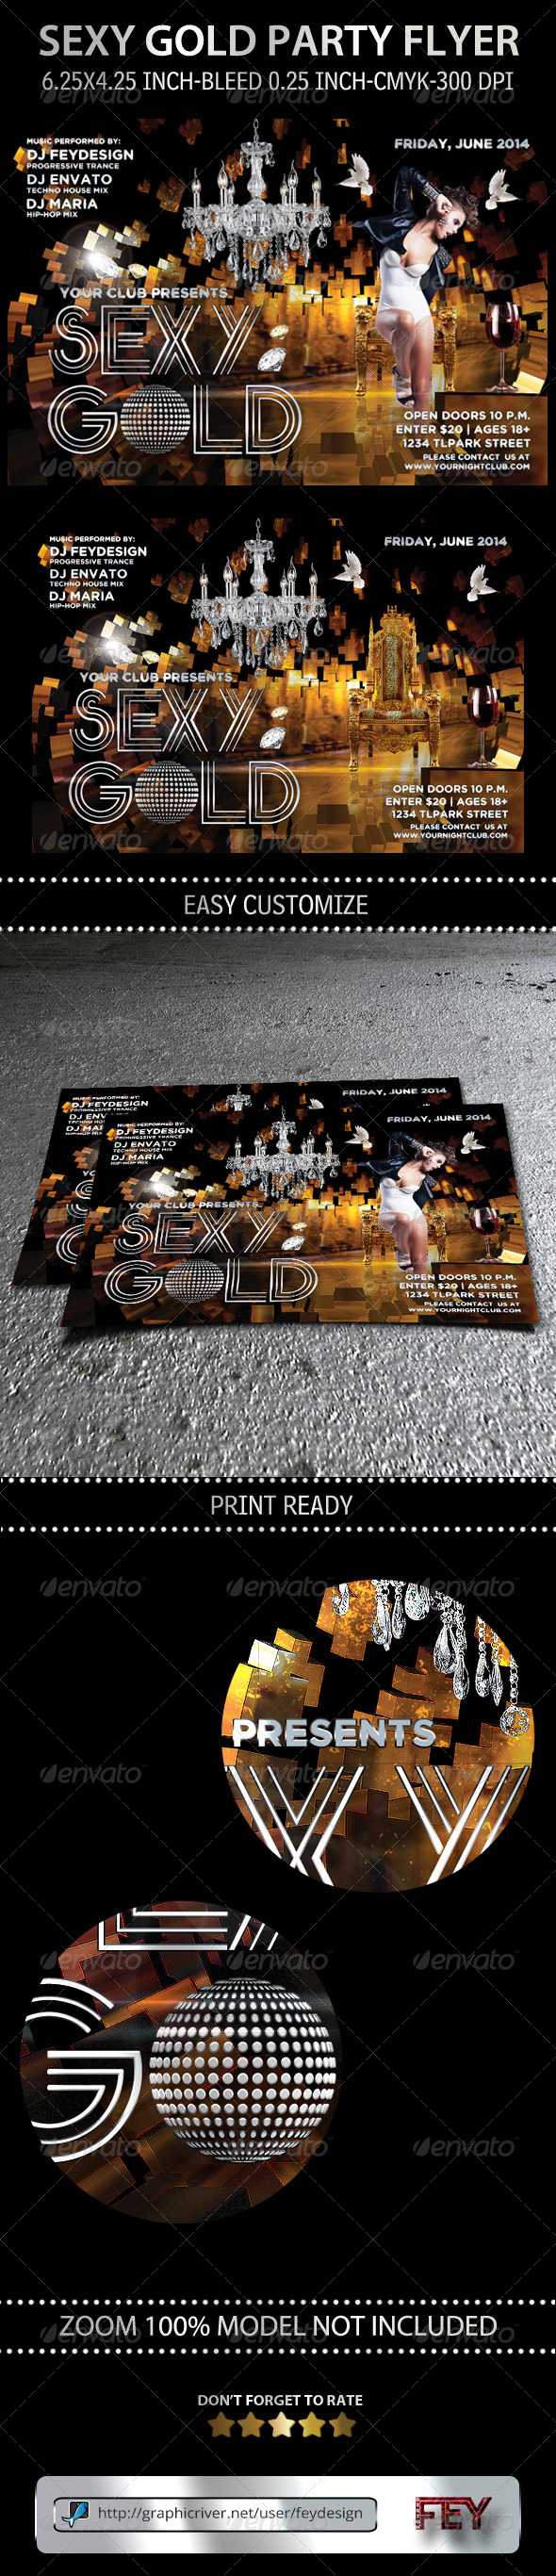 Sexy Gold Party Flyer - Clubs & Parties Events